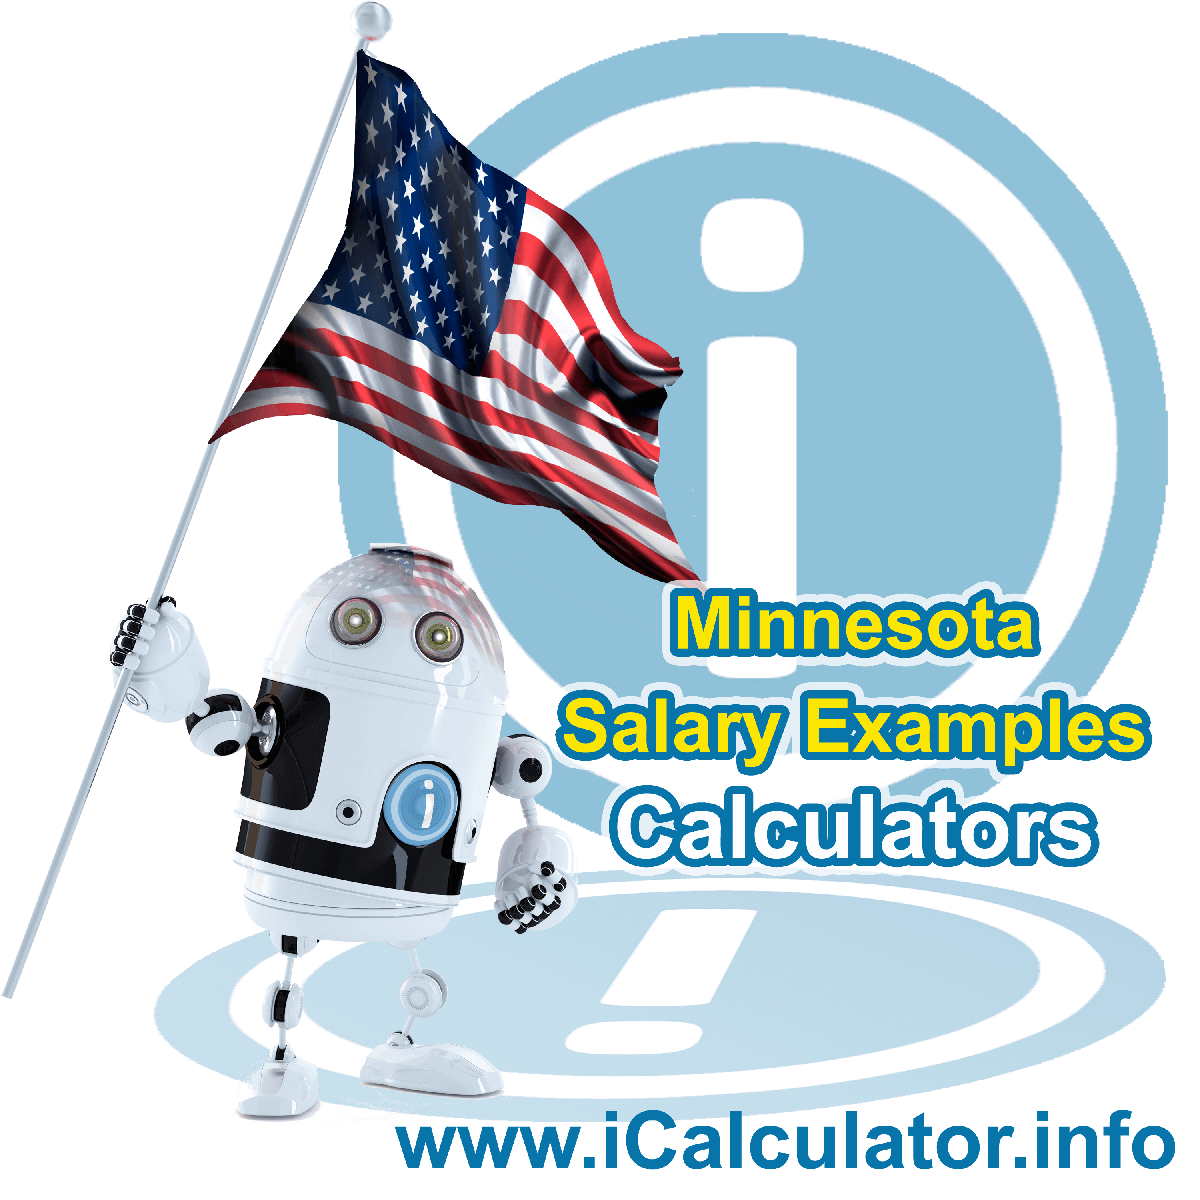 Minnesota Salary Example for $90,000.00 in 2020 | iCalculator | $90,000.00 salary example for employee and employer paying Minnesota State tincome taxes. Detailed salary after tax calculation including Minnesota State Tax, Federal State Tax, Medicare Deductions, Social Security, Capital Gains and other income tax and salary deductions complete with supporting Minnesota state tax tables